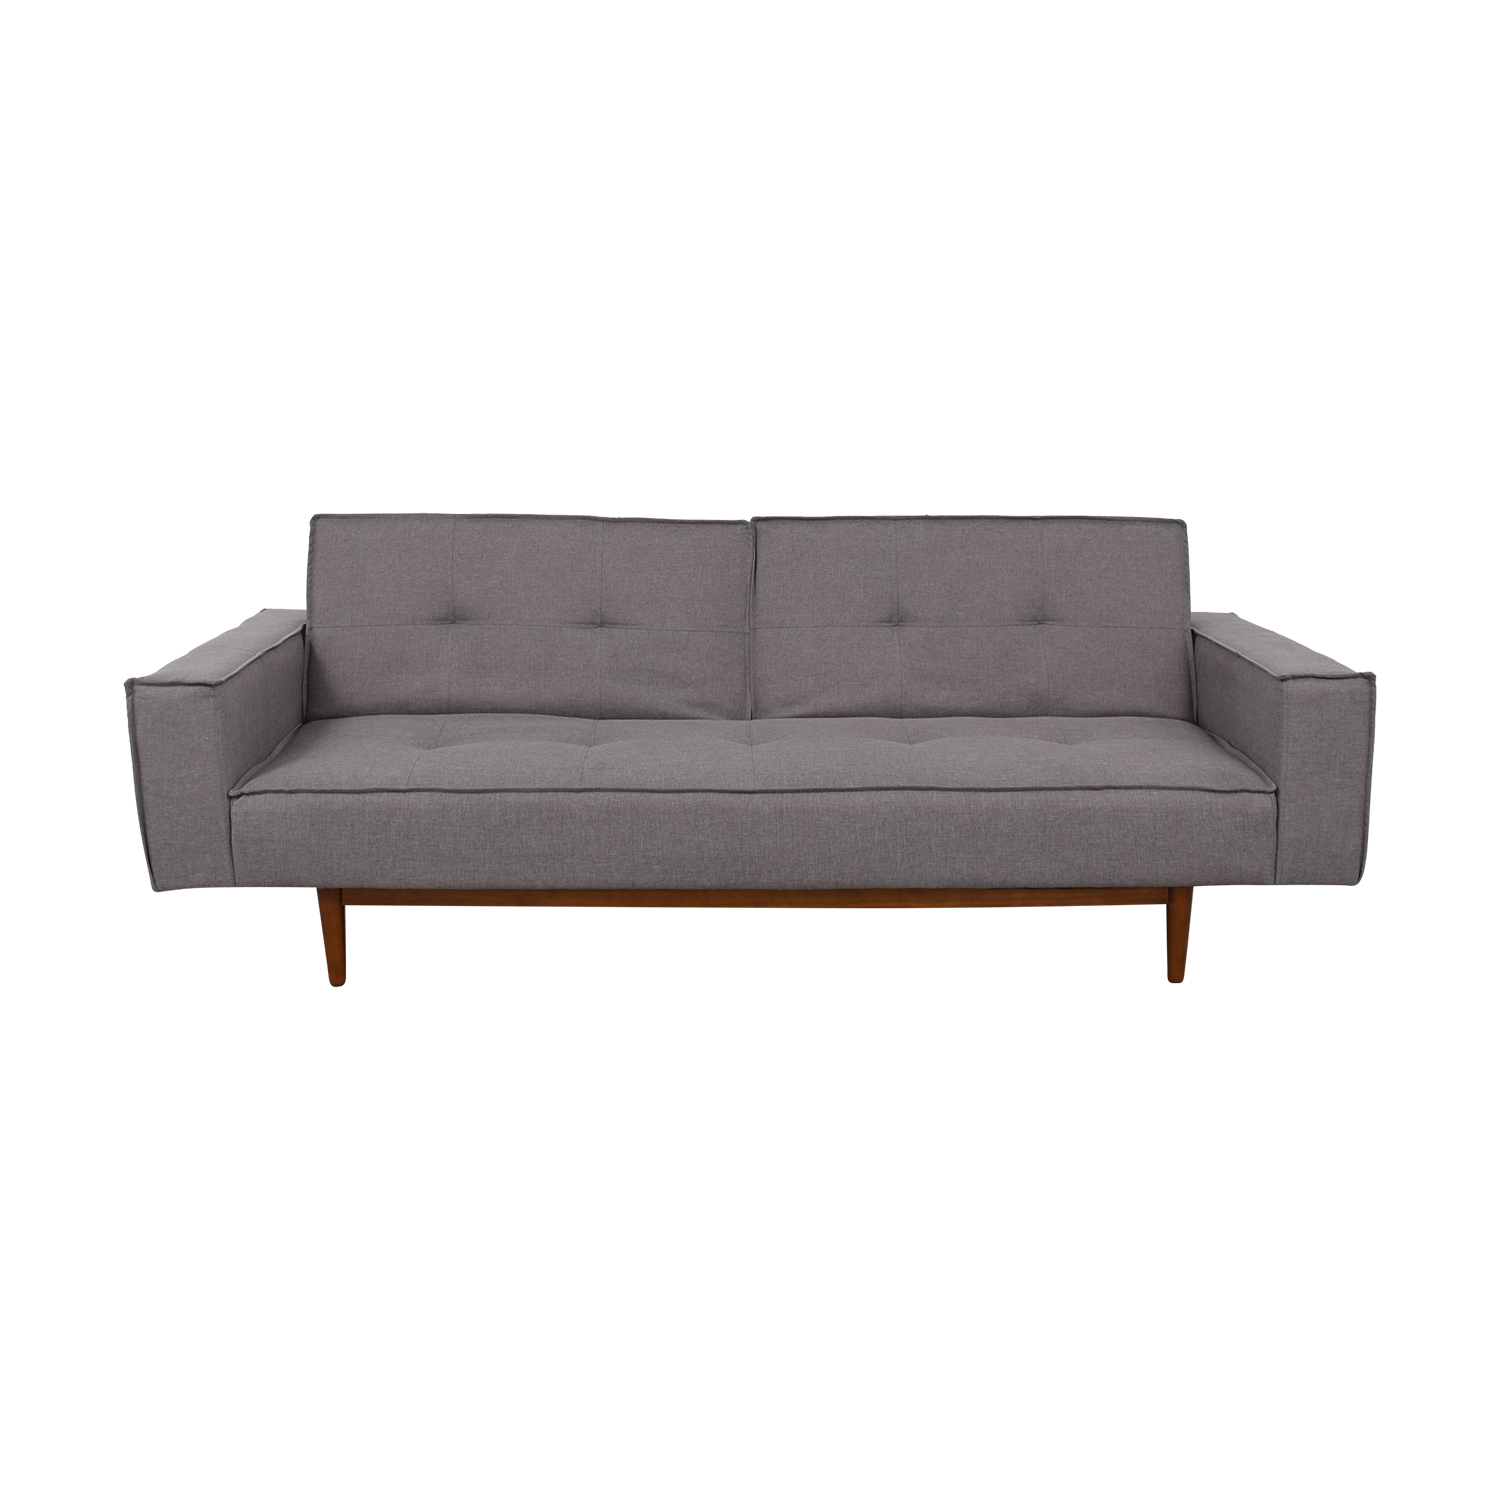 Aeon Furniture Aeon Furniture Sofa gray